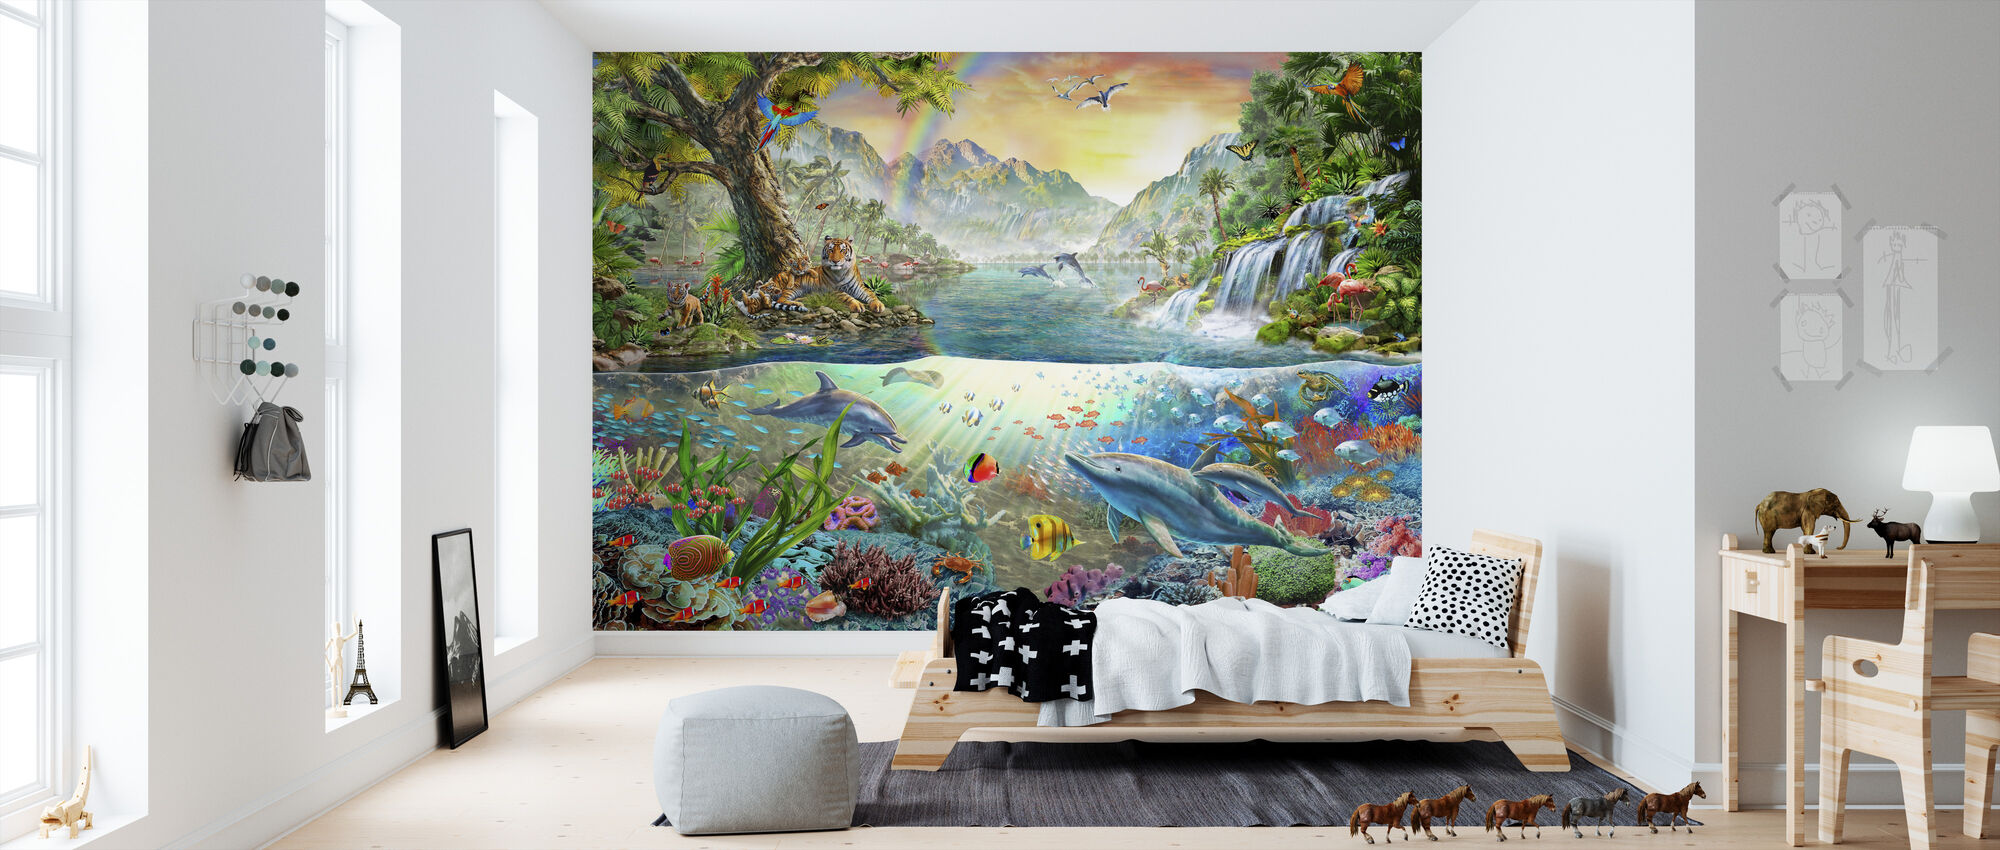 Land and Water Utopia - Wallpaper - Kids Room